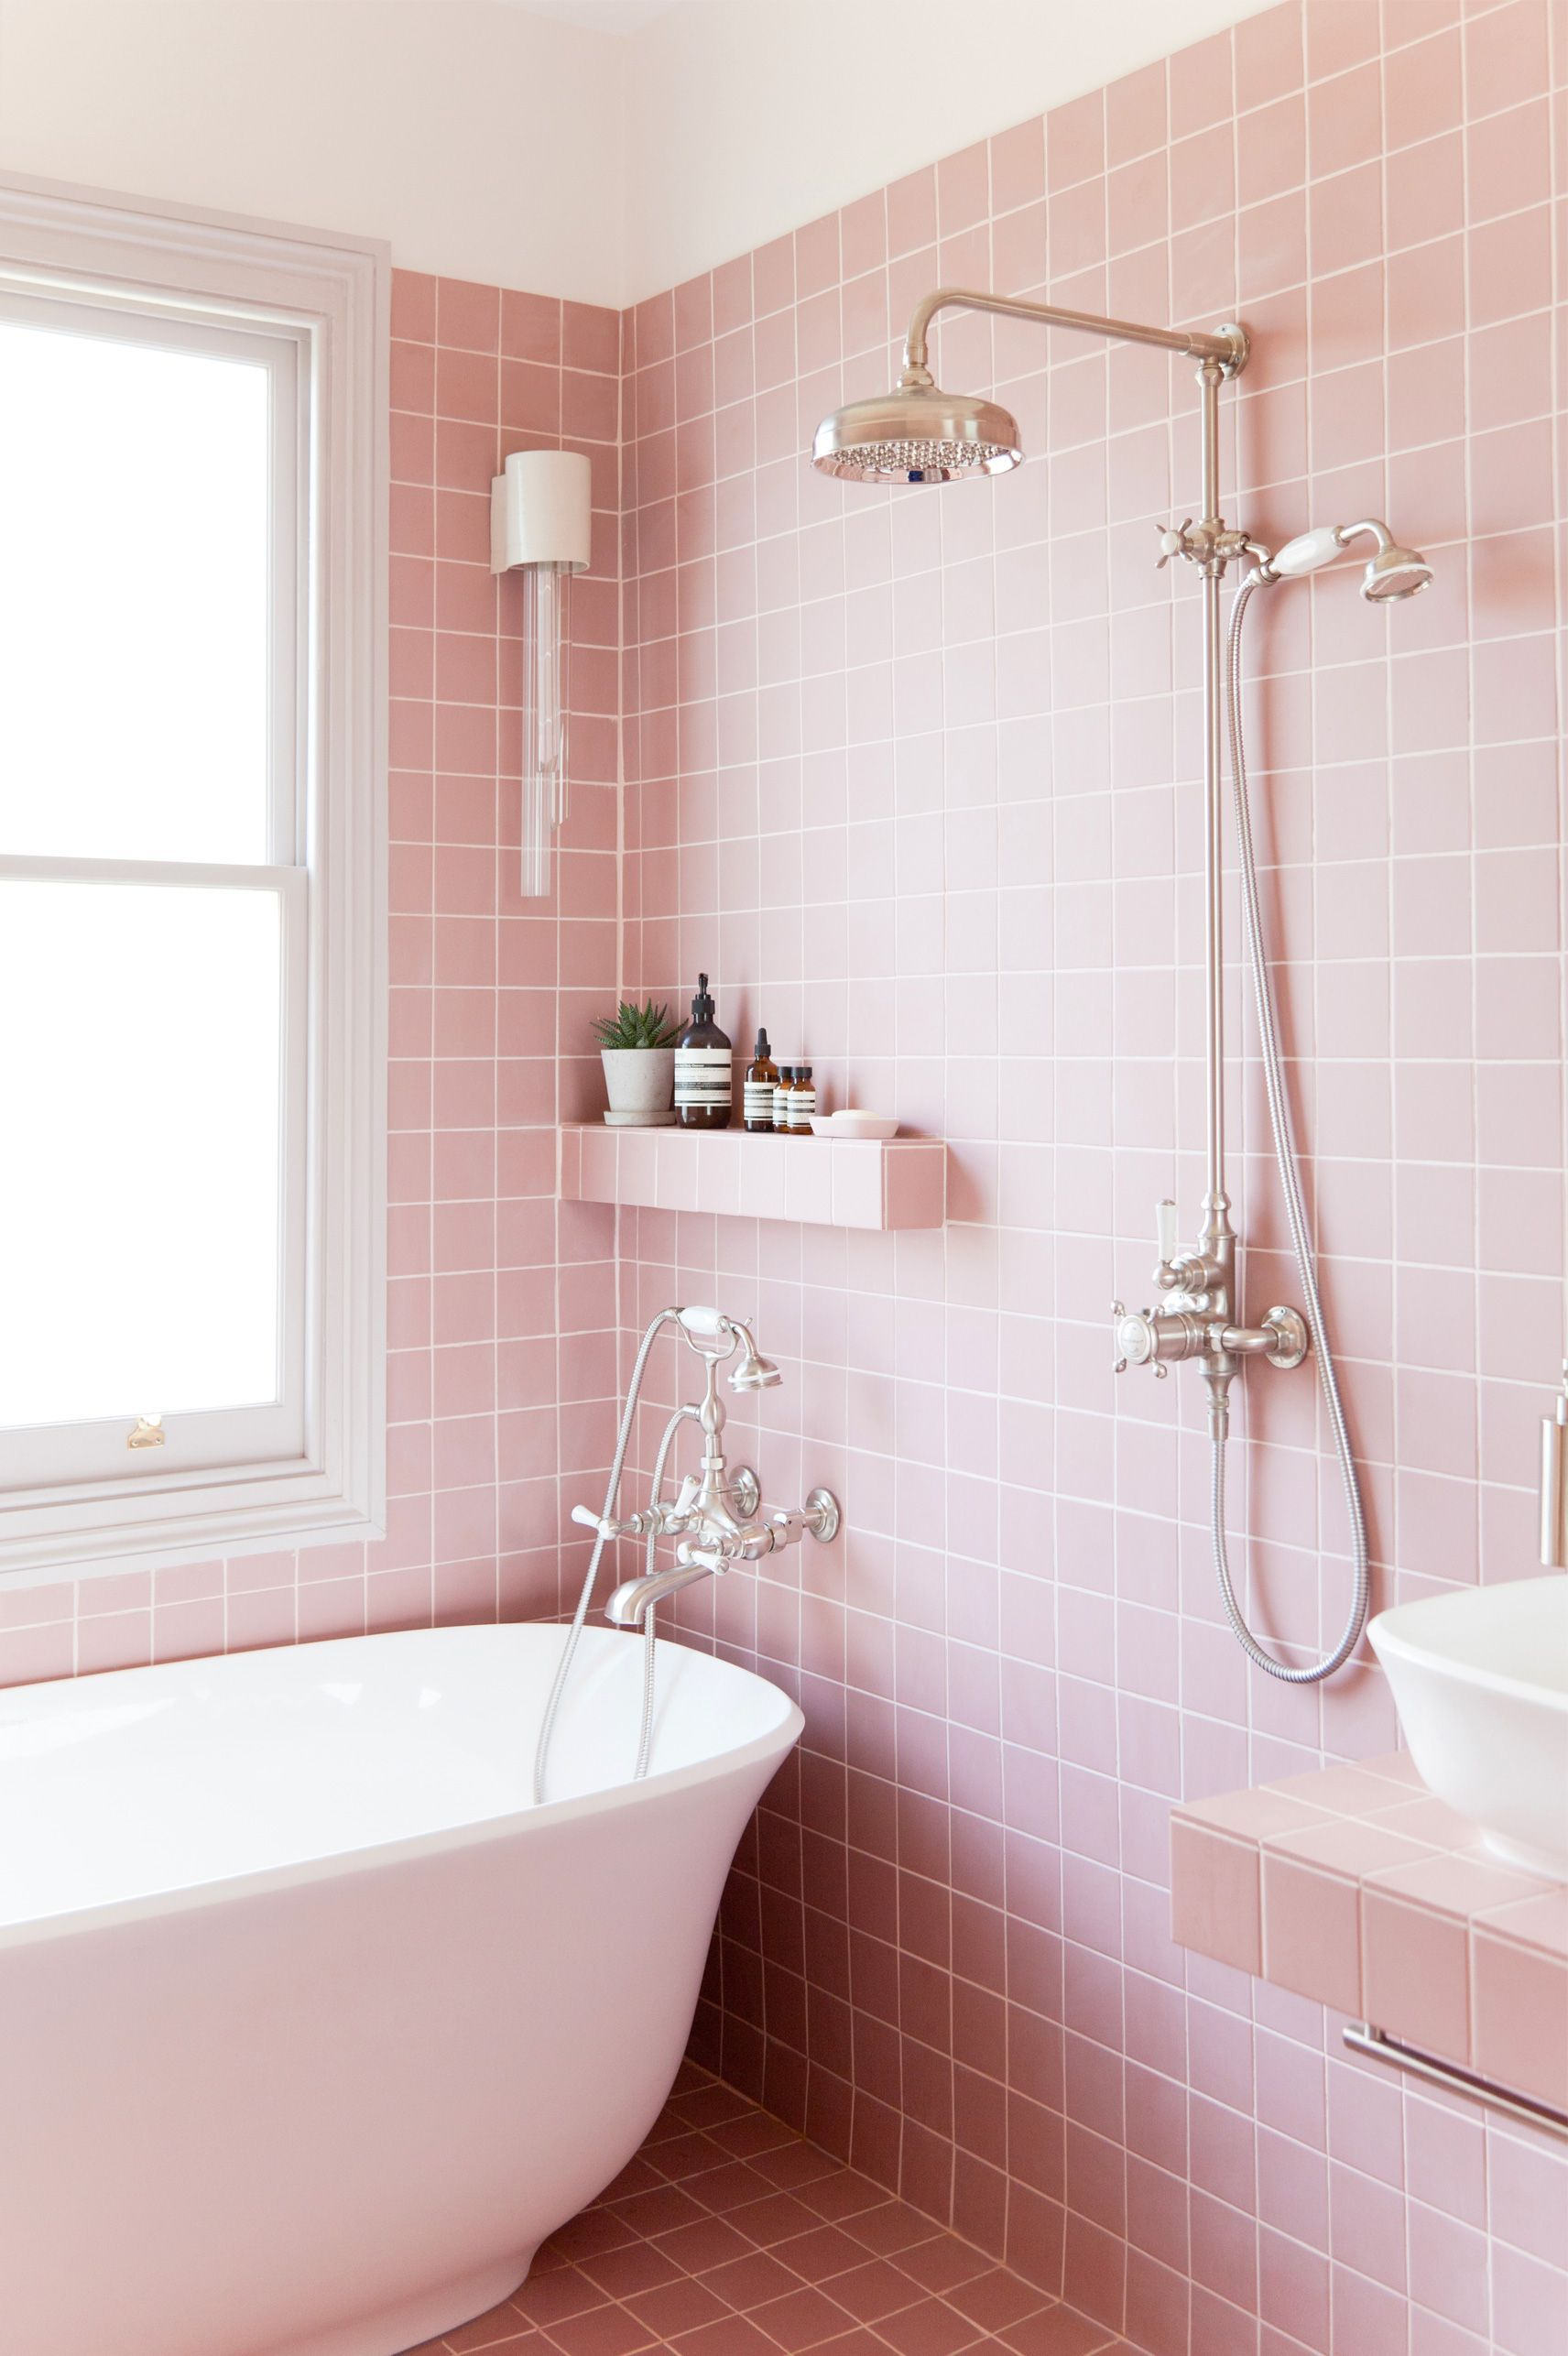 Dorf badezimmer design our new pink bathroom you can read more and see the full remodel on